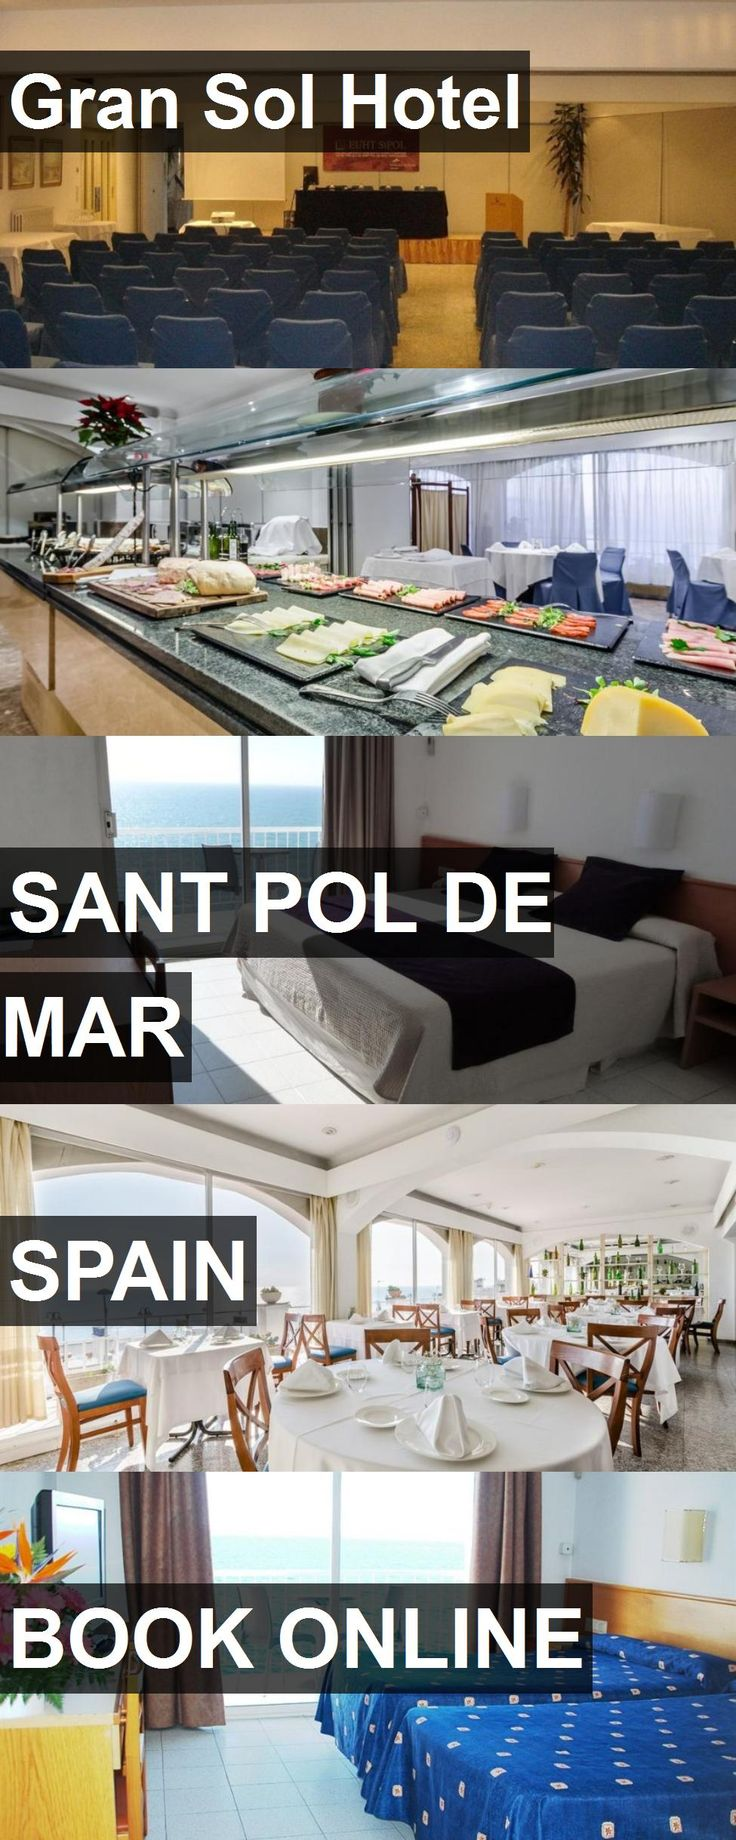 Hotel Gran Sol Hotel in Sant Pol de Mar, Spain. For more information, photos, reviews and best prices please follow the link. #Spain #SantPoldeMar #GranSolHotel #hotel #travel #vacation